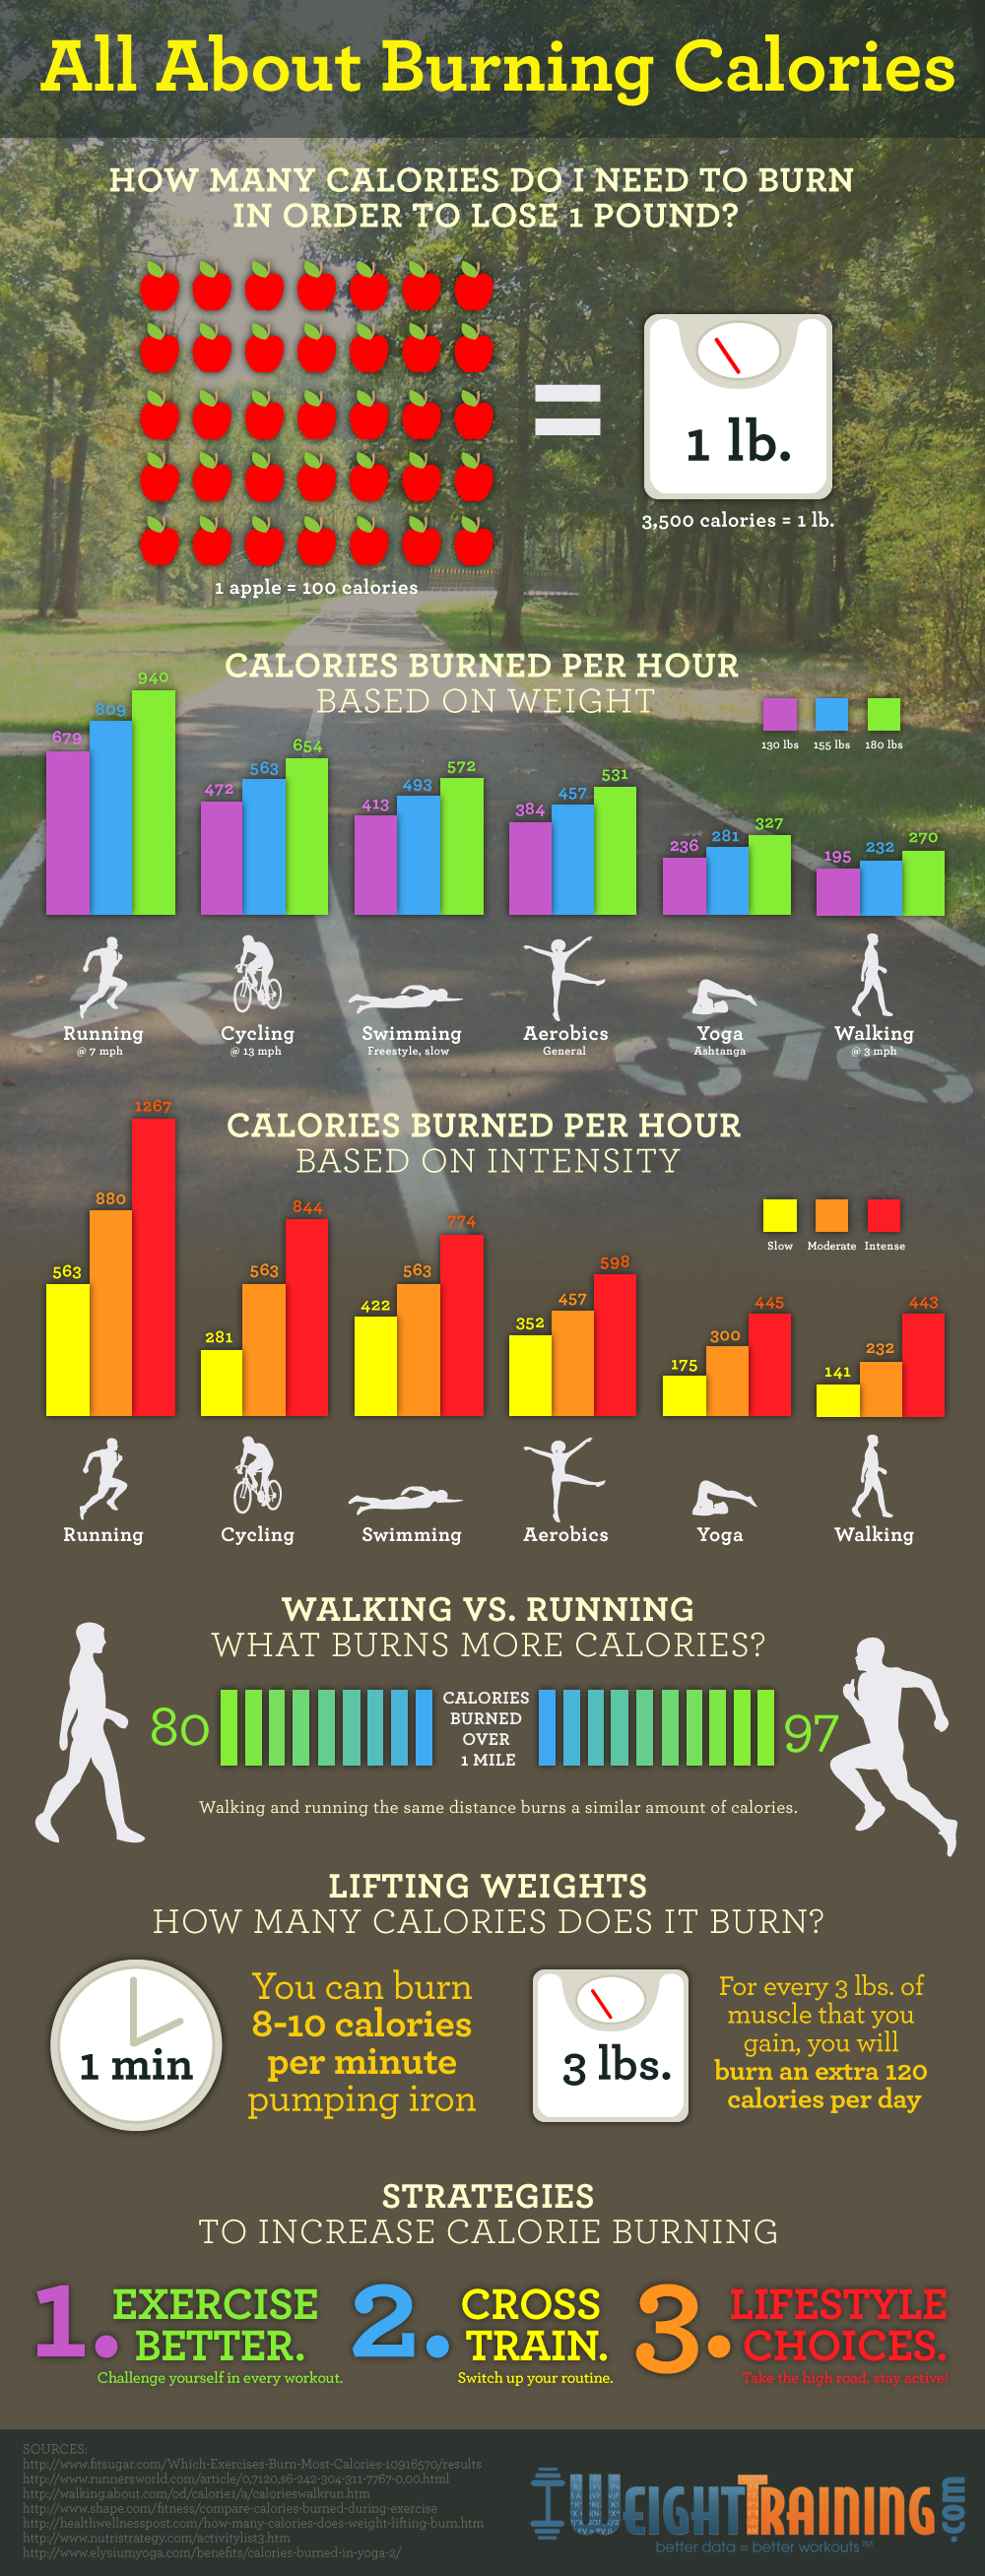 All About Burning Calories  How Does It Work?